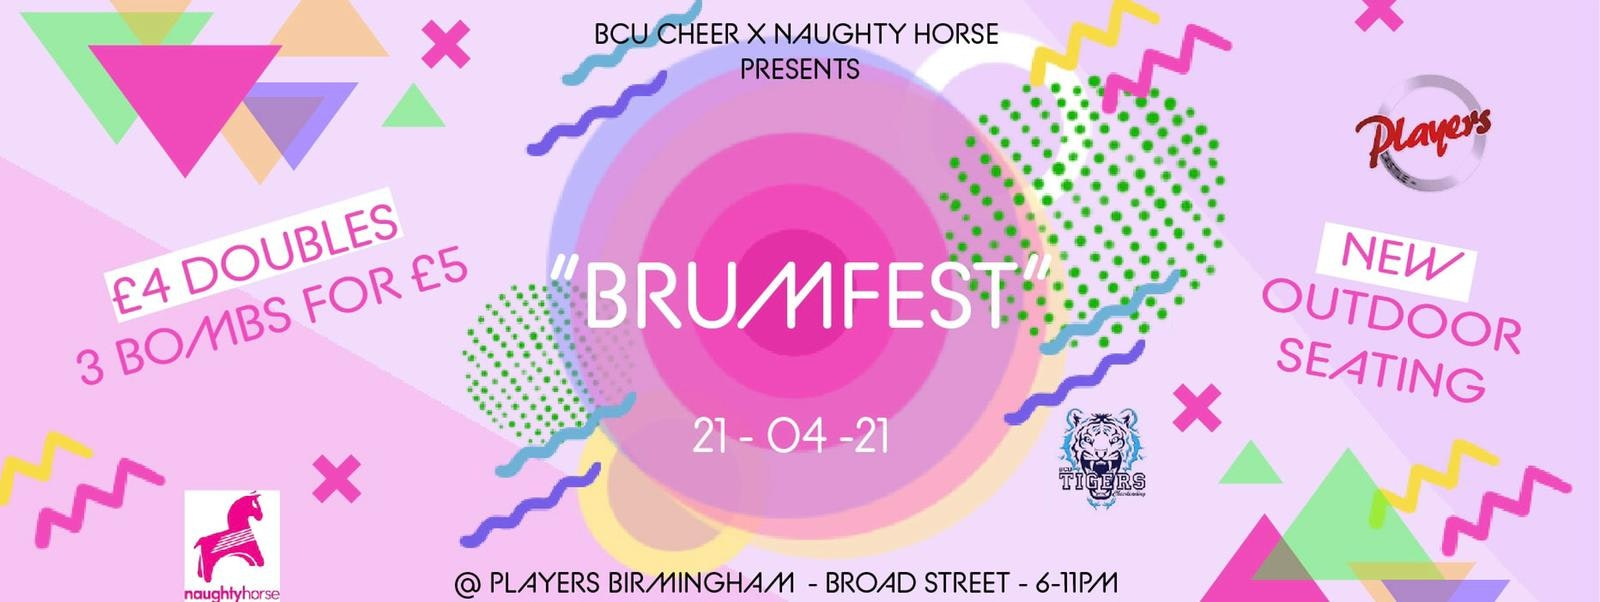 'Brumfest: Players Street Terrace Takeover' – BCU CHEER X Naughty Horse!